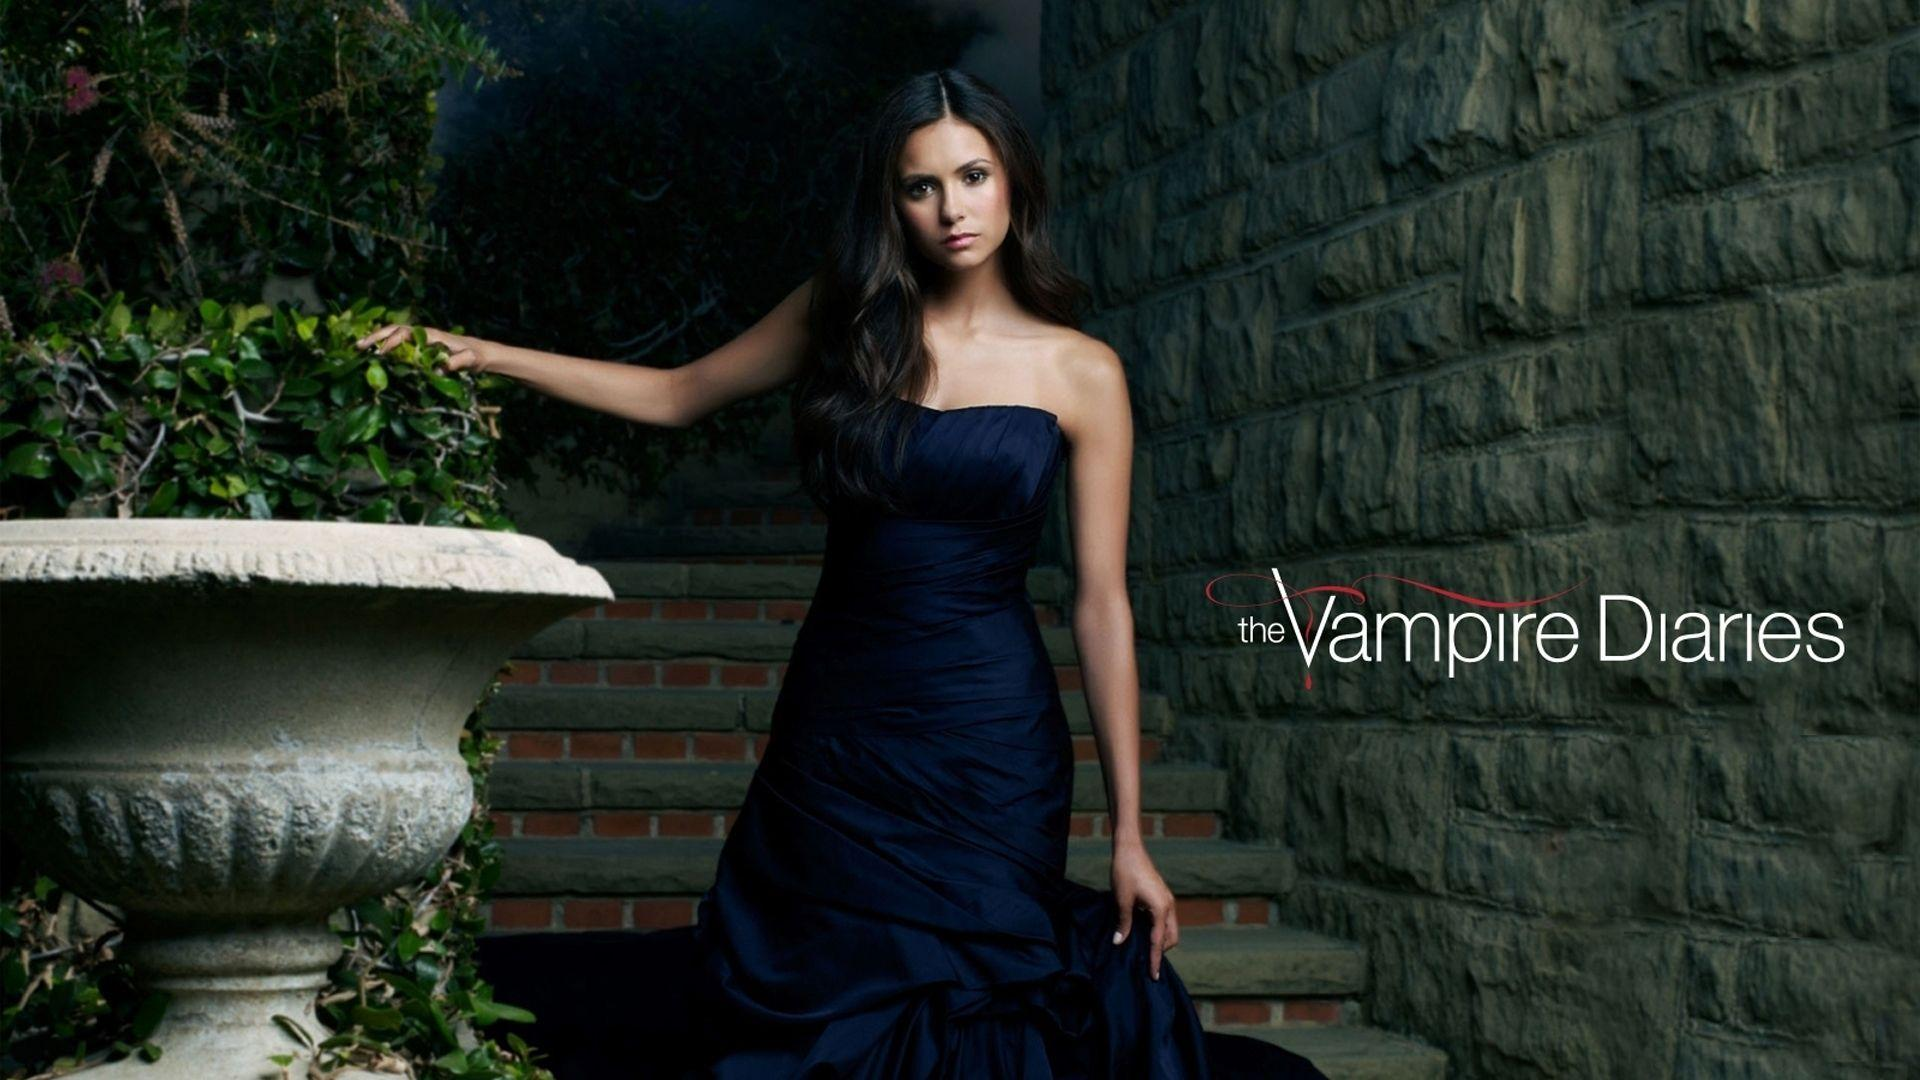 Nina Dobrev Wallpapers, Pictures, Image